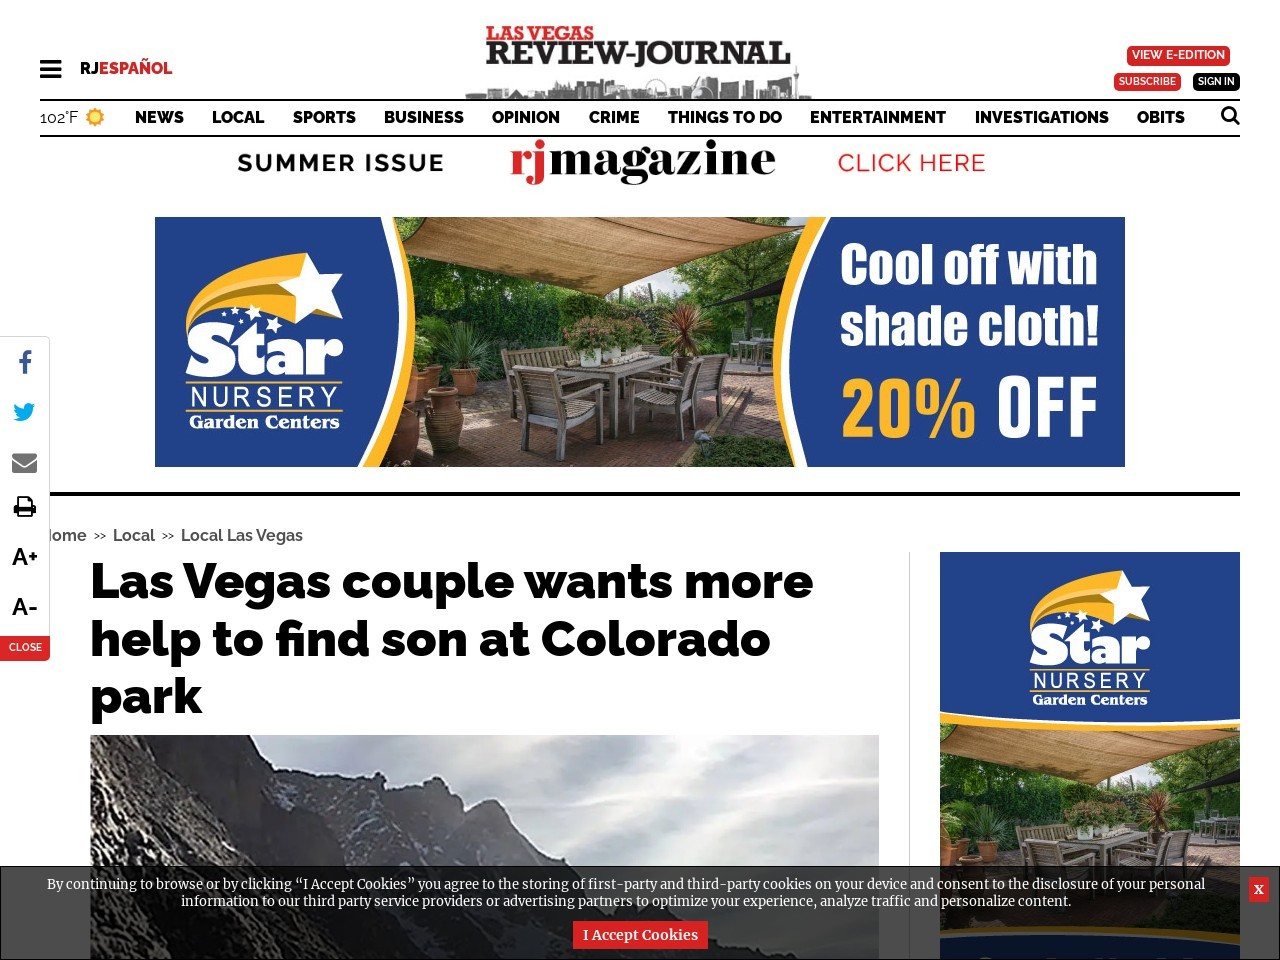 Las Vegas couple wants more help to find son at Colorado park